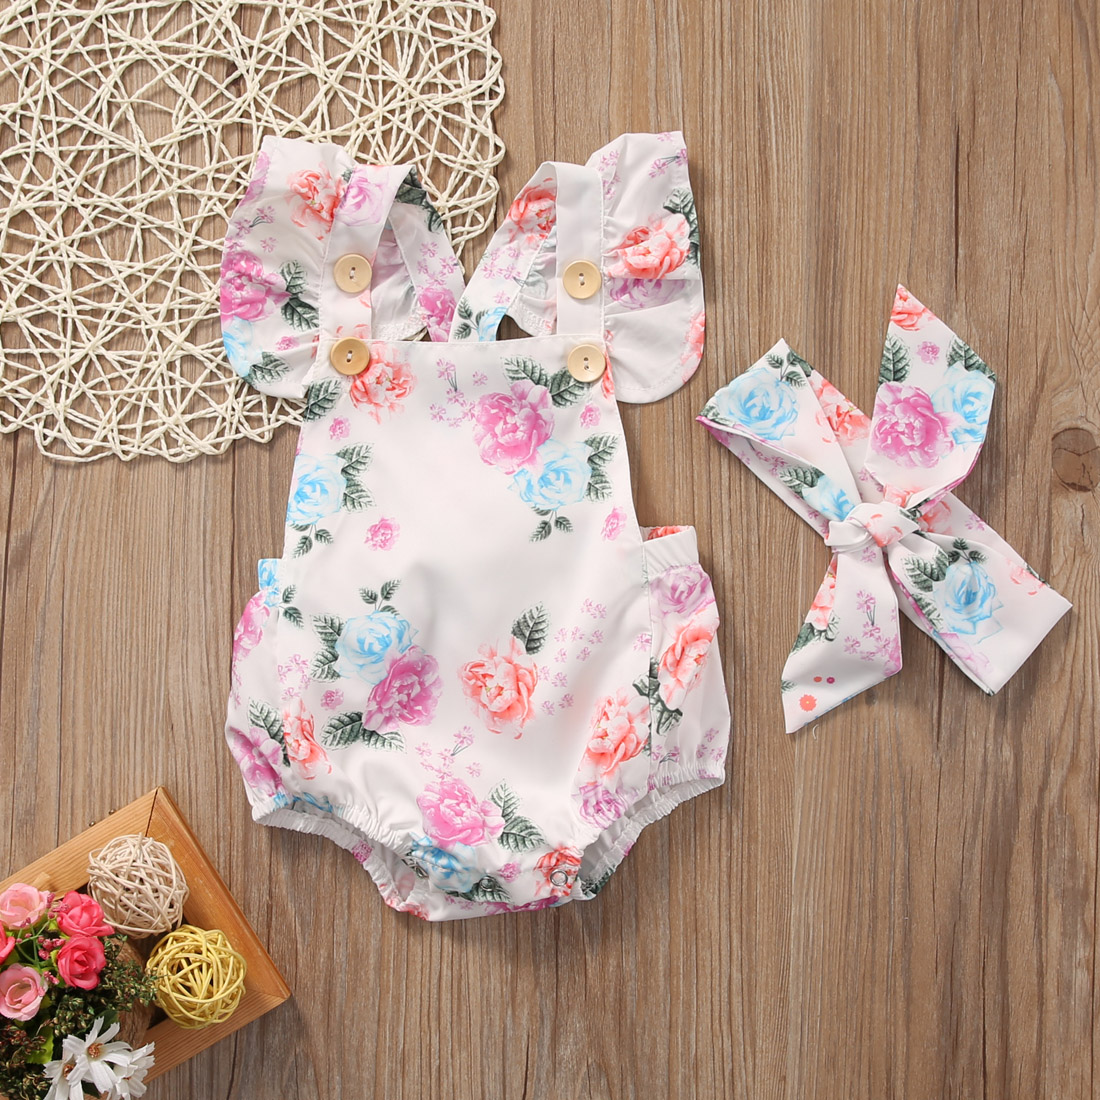 Baby Girls Floral   Rompers   Summer Headband Cotton Outfits Cute Kids Clothes   Romper